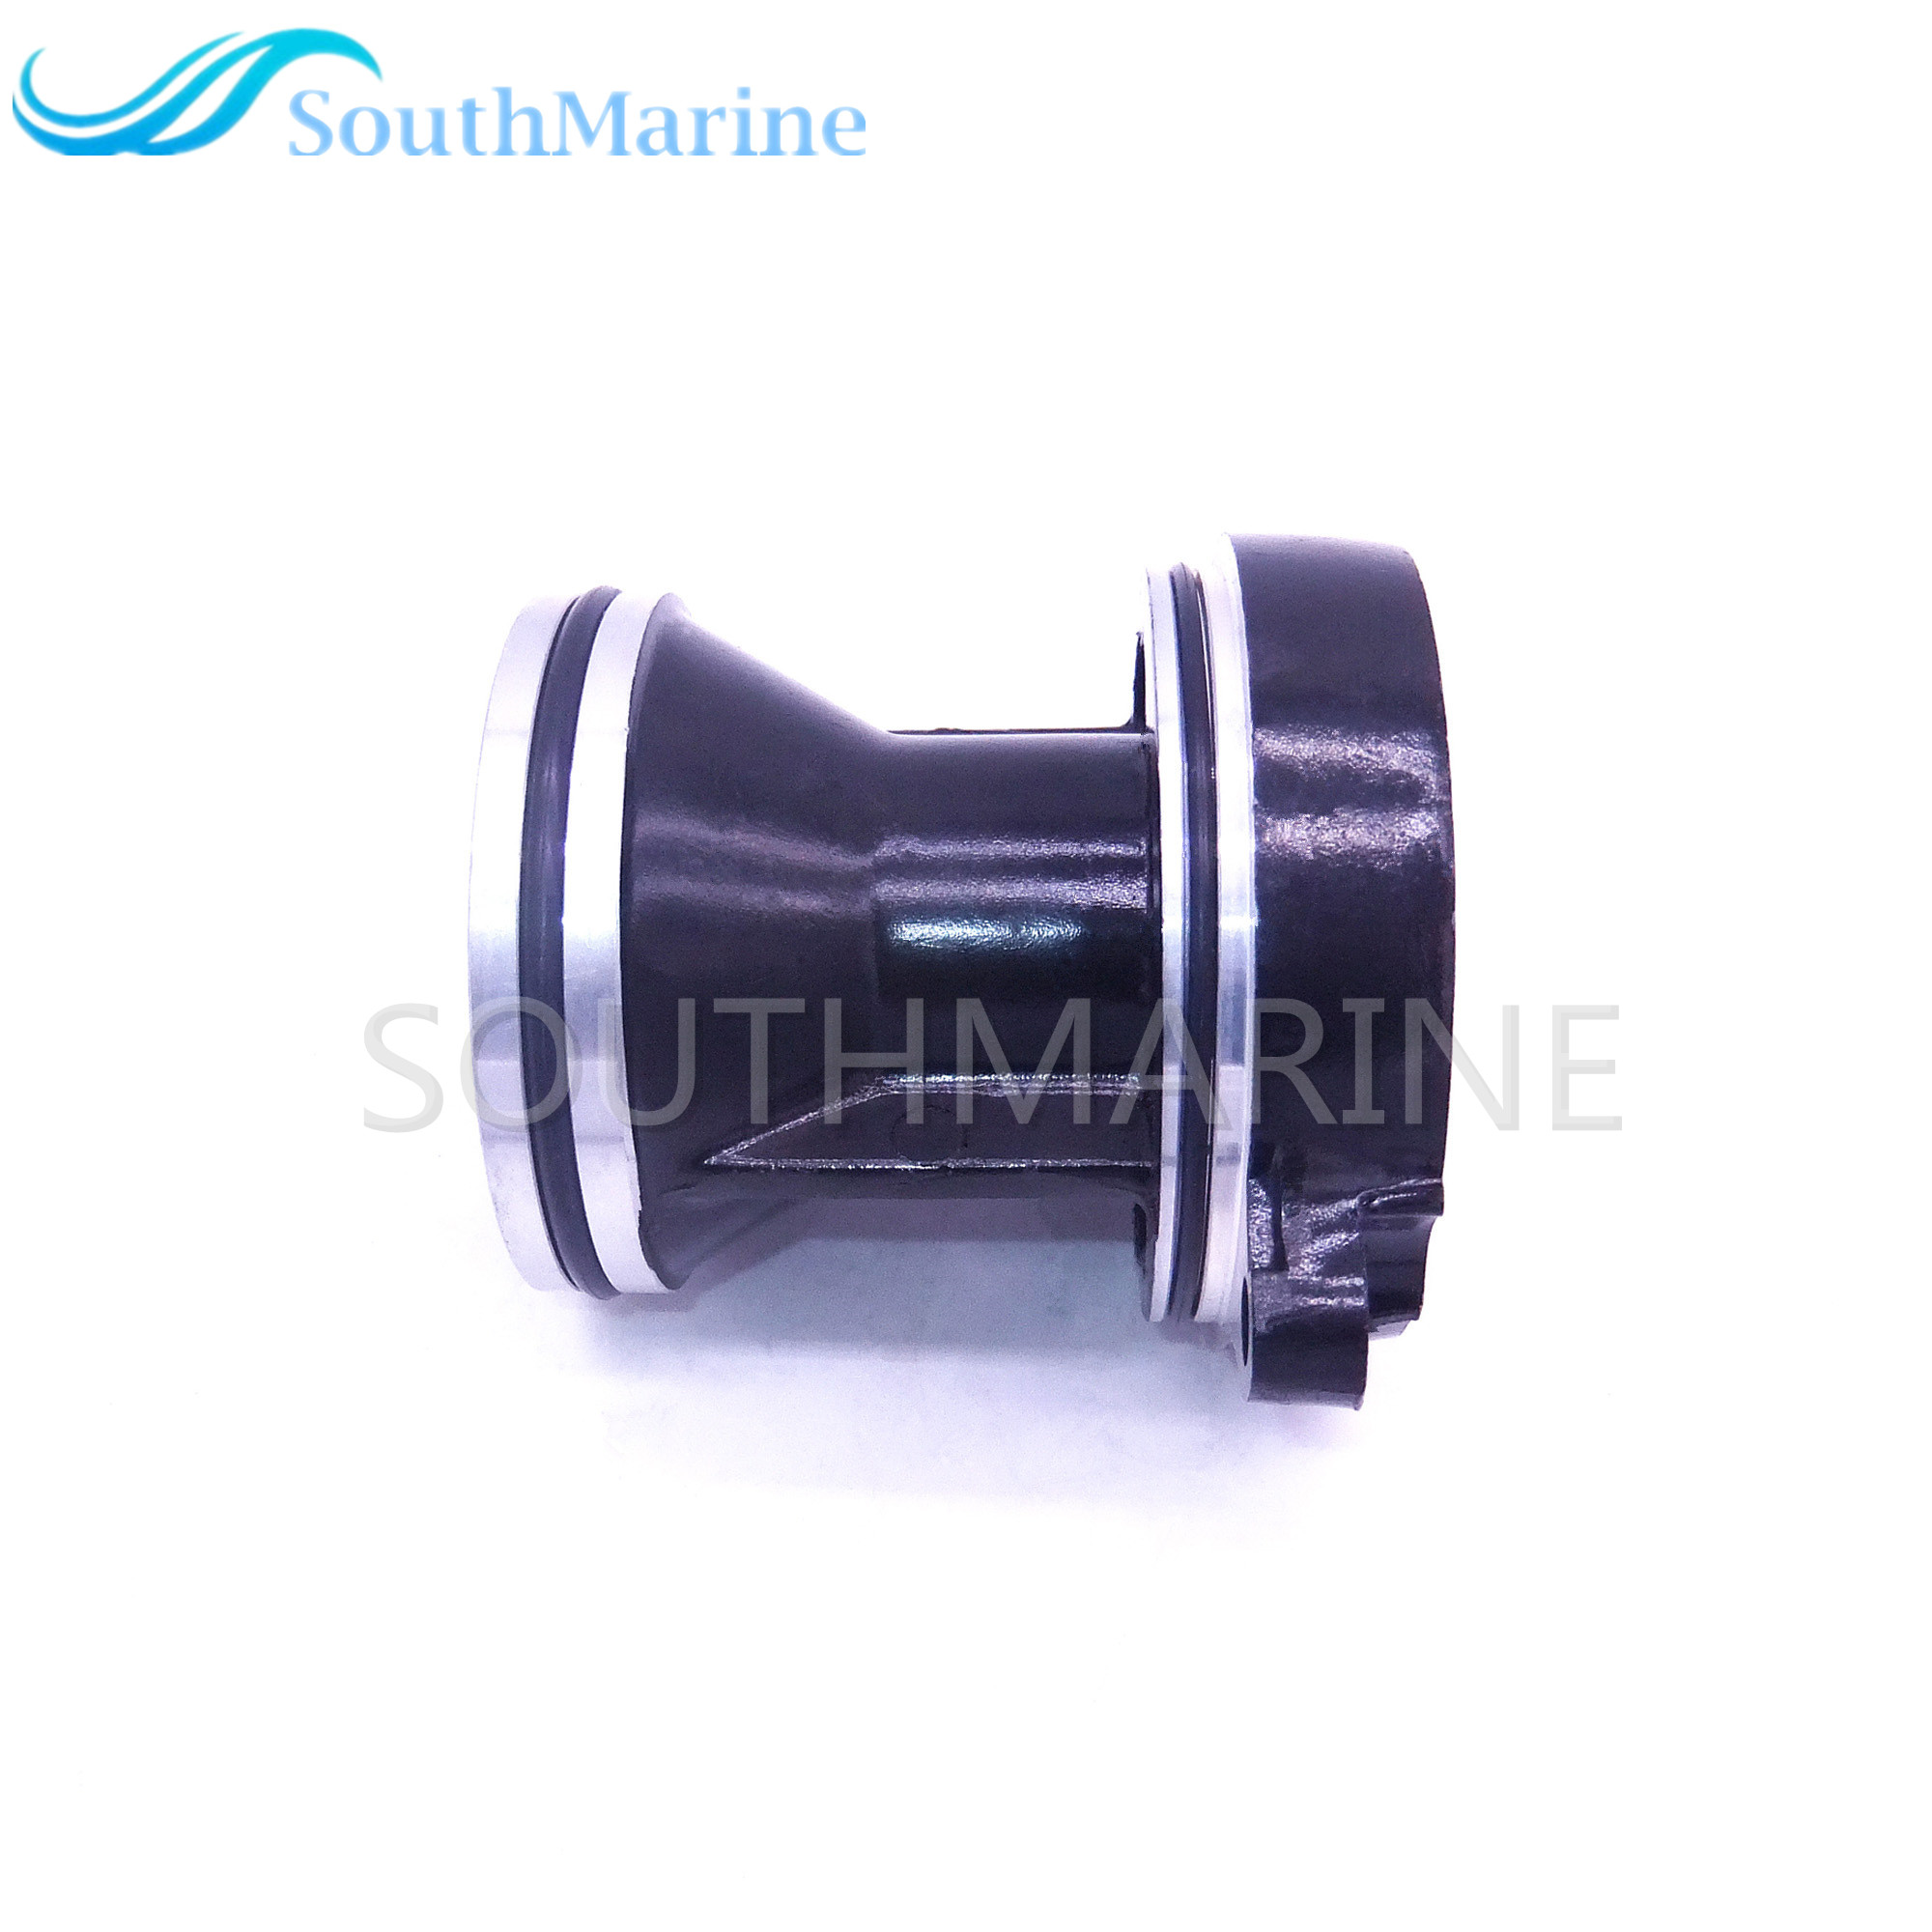 683-45361 6B4 Lower Casing Cap Gear fit Yamaha Parsun Outboard 15HP 9.9HP 20HP